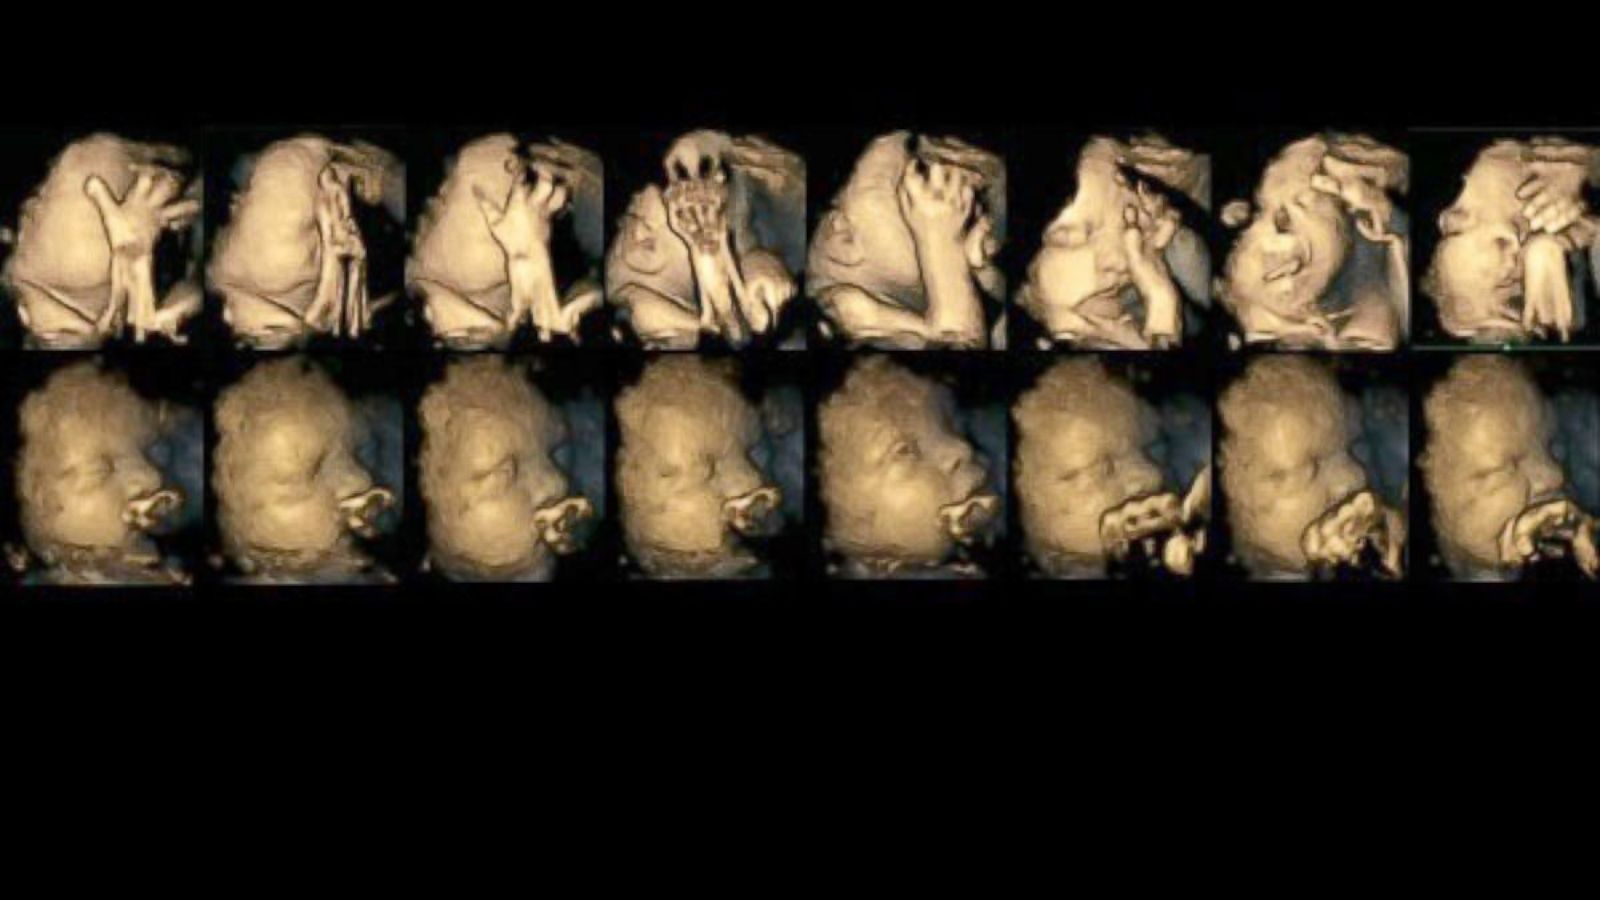 These Horrifying Ultrasound Images Reveal What Smoking Does to an Unborn Baby